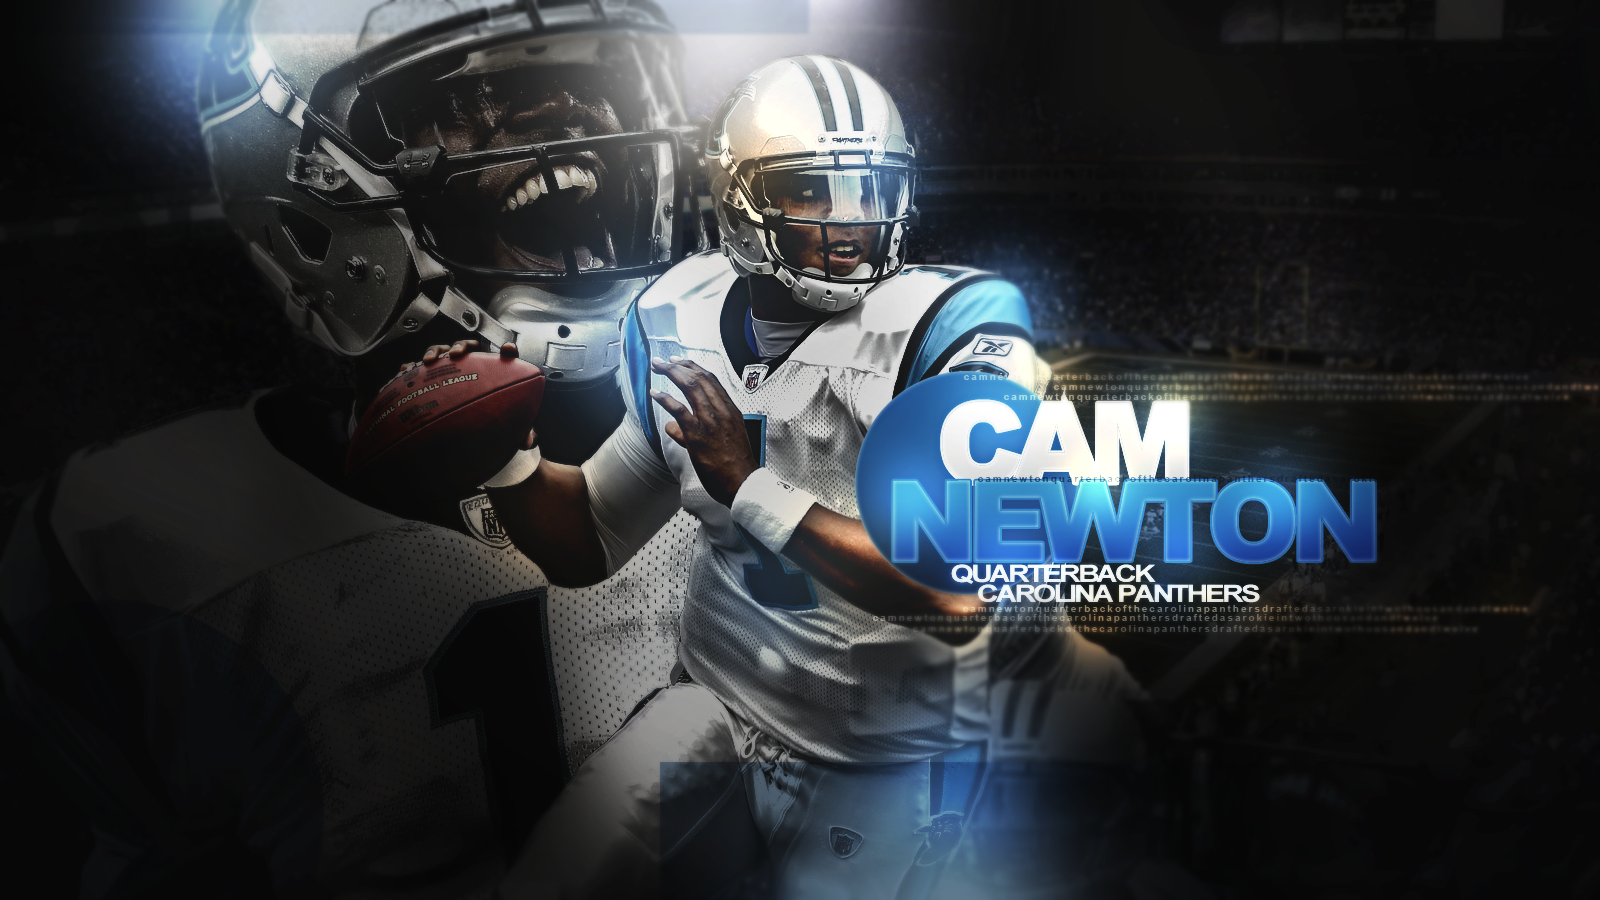 Cameron Jerrell Newton is a quarterback for the Carolina Panthers of 1600x900